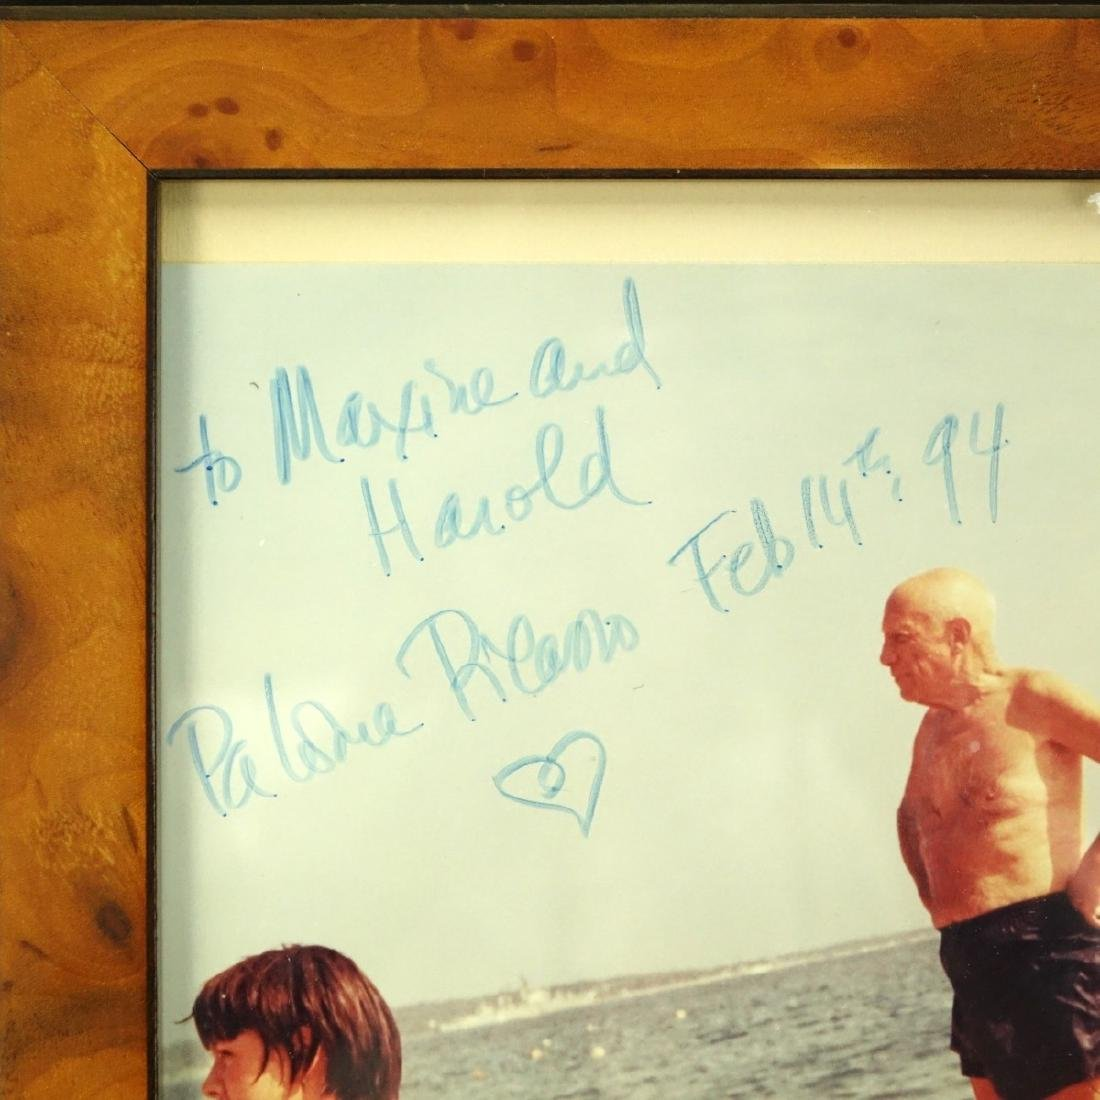 Photograph Of Picasso Signed By Paloma Picasso - 3